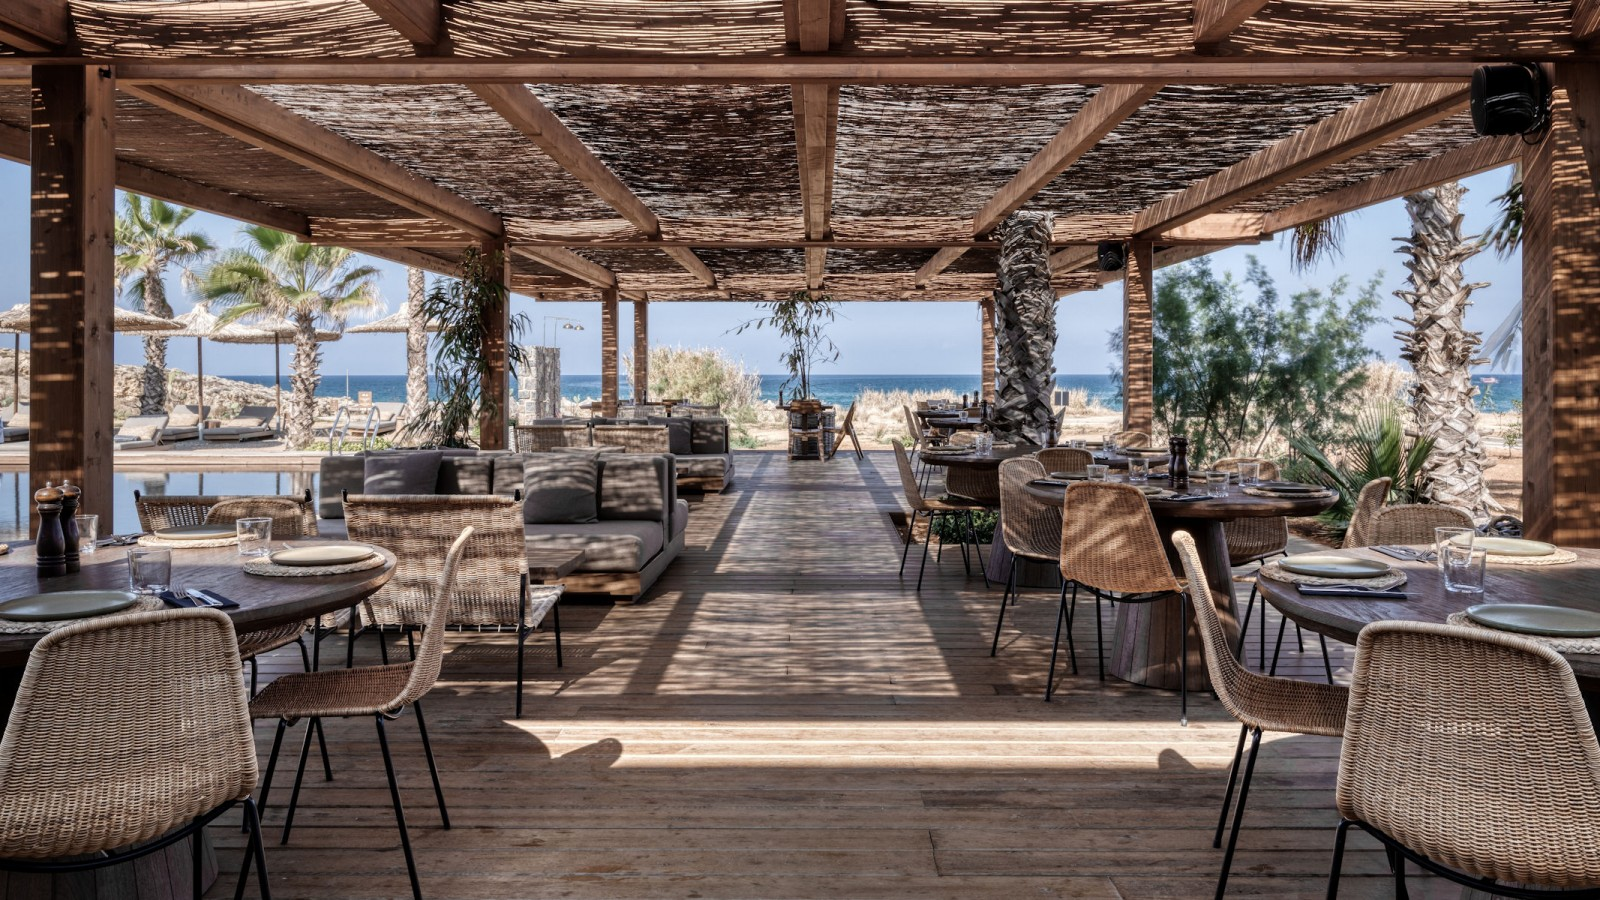 Domes Zeen Chania, a Luxury Collection Resort | ATOL Protected Holidays from Travelbeam